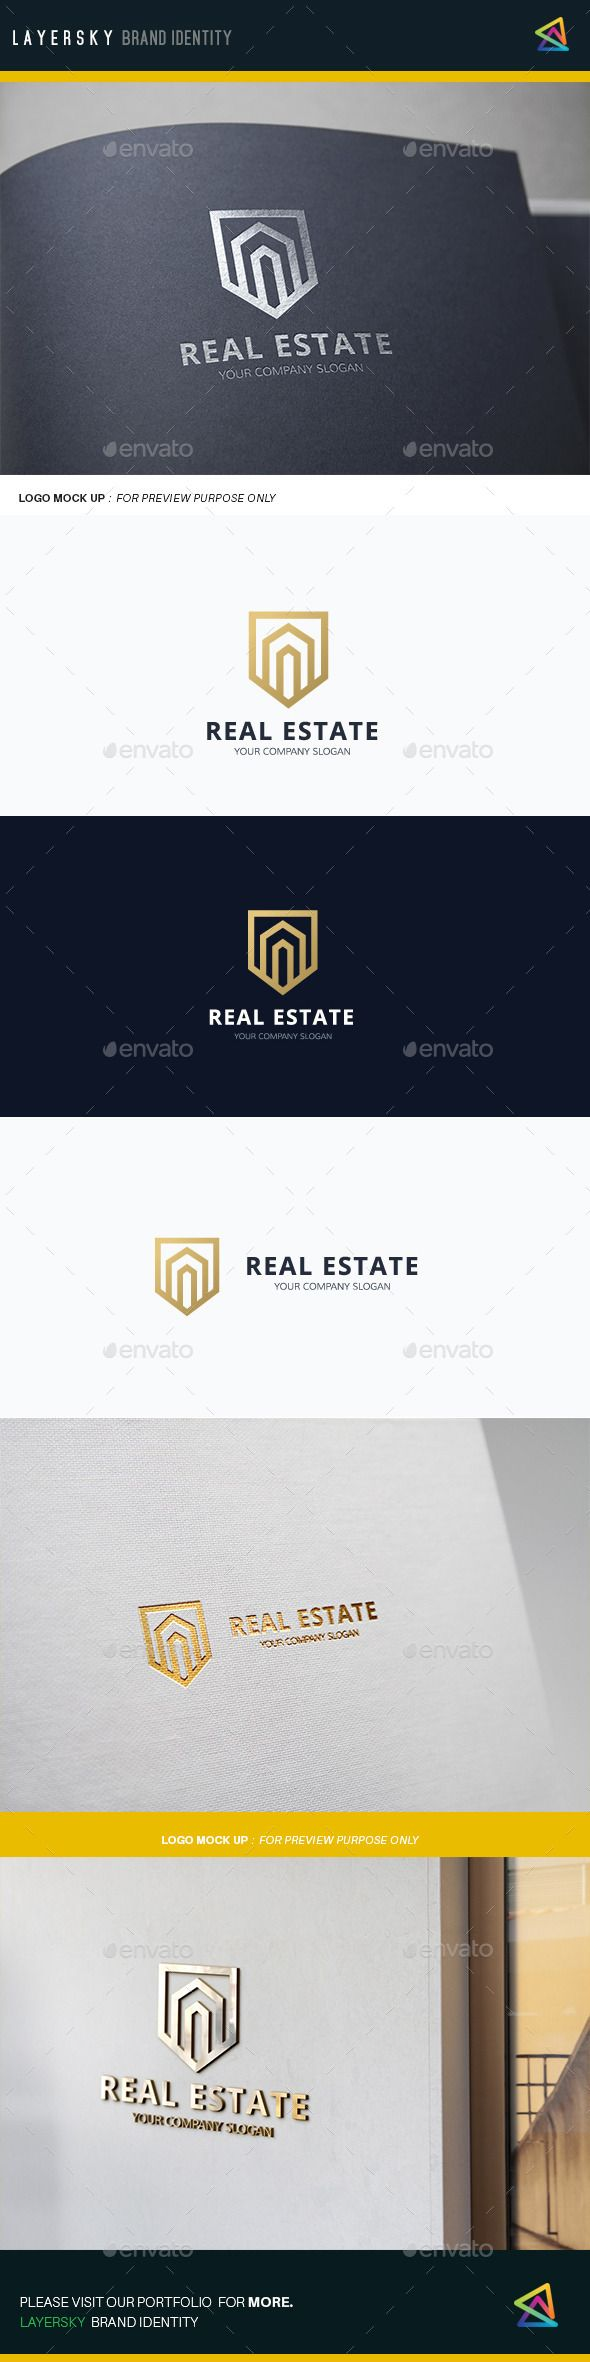 Real Estate Logo Template Vector EPS, AI #design #logotype Download: http://graphicriver.net/item/real-estate-/11889714?ref=ksioks